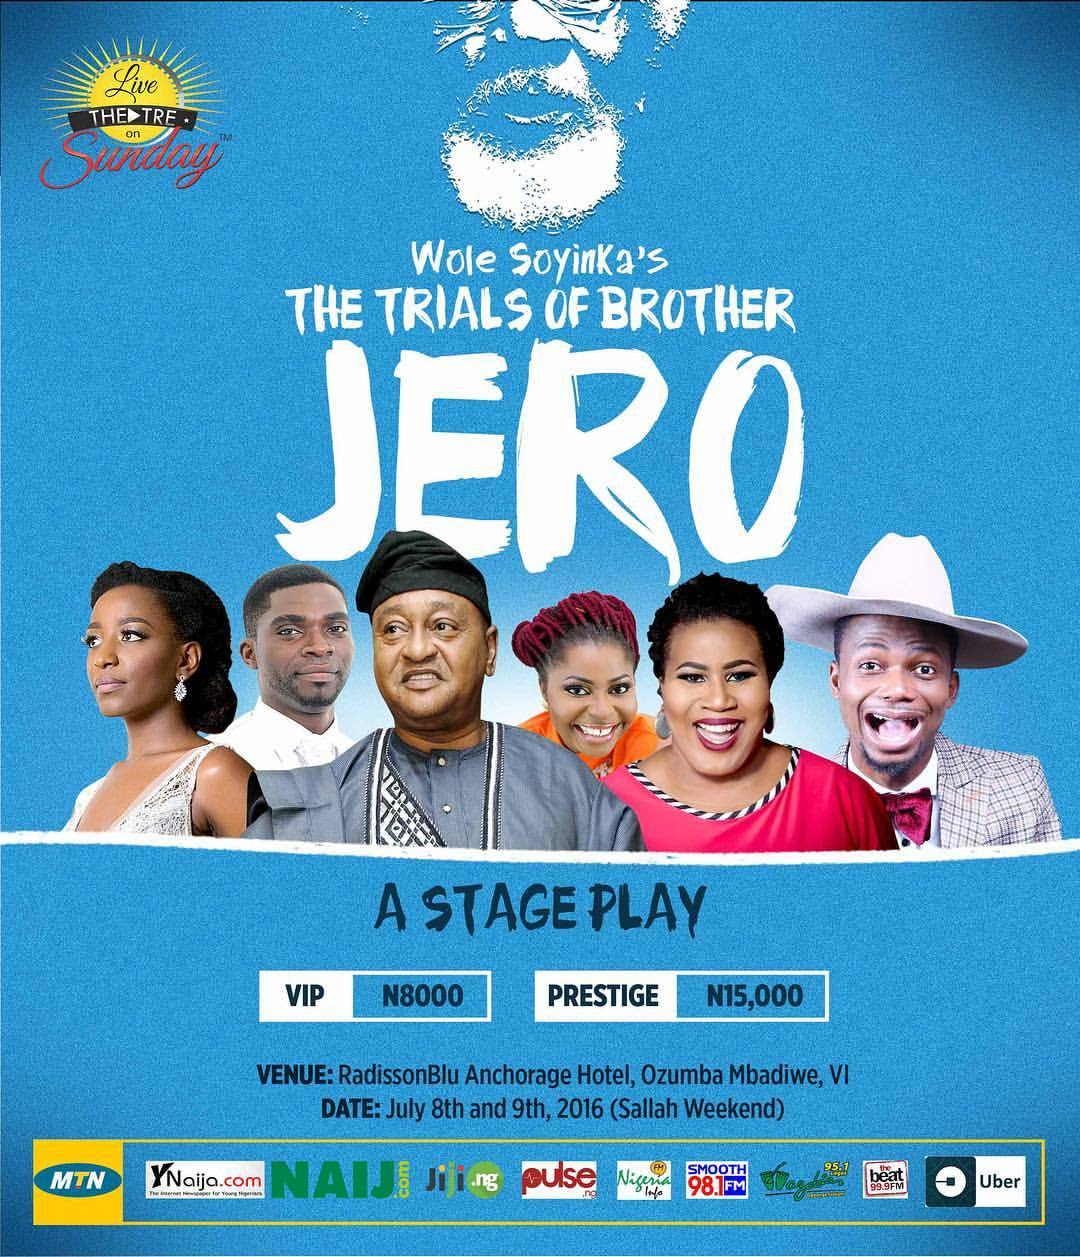 🙋🏾 Hello, Hi 🙋🏾 Please add this to your calendar: come and see   'The Trials of Brother Jero'   Friday, 8th of July and Saturday the 9th of July 2016 (that's next weekend).     It is brought to you by @livetheatreonsunday, directed by @kennethuphopho and starring @jidekosoko @paulinksus @patrickdiabuah @theonlychigul @debbieohiri @ms_goodyz and me. Come see us at the Radisson Blu Hotel.   Show time: 3PM and 7PM each day.    Tickets: VIP N8,000; Prestige N15,000   #BrotherJero #NigerianTheatre